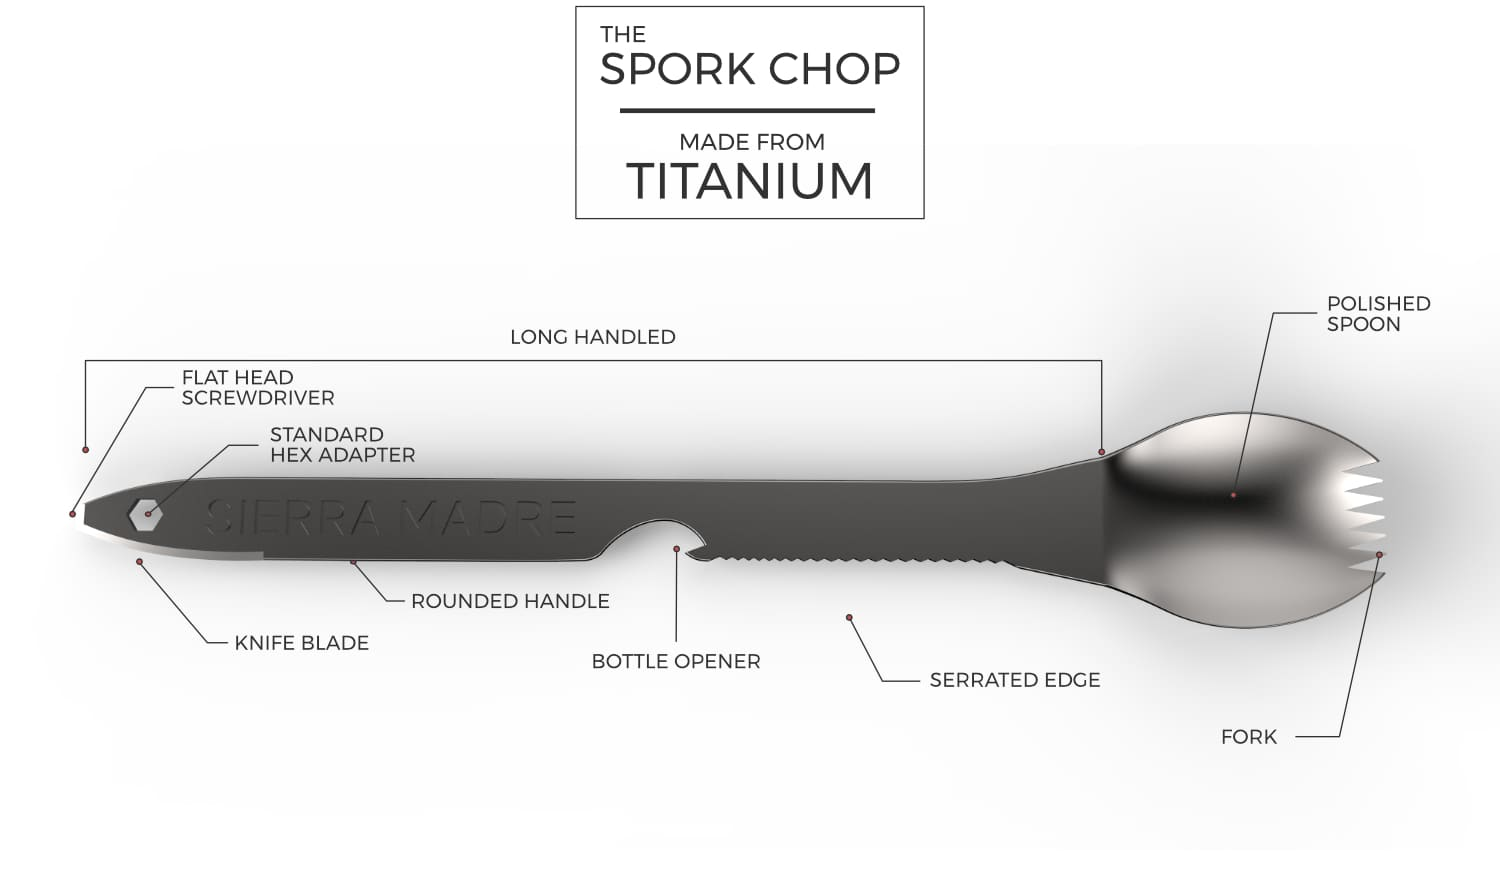 The Spork Chop is a long handled multi functional Spork